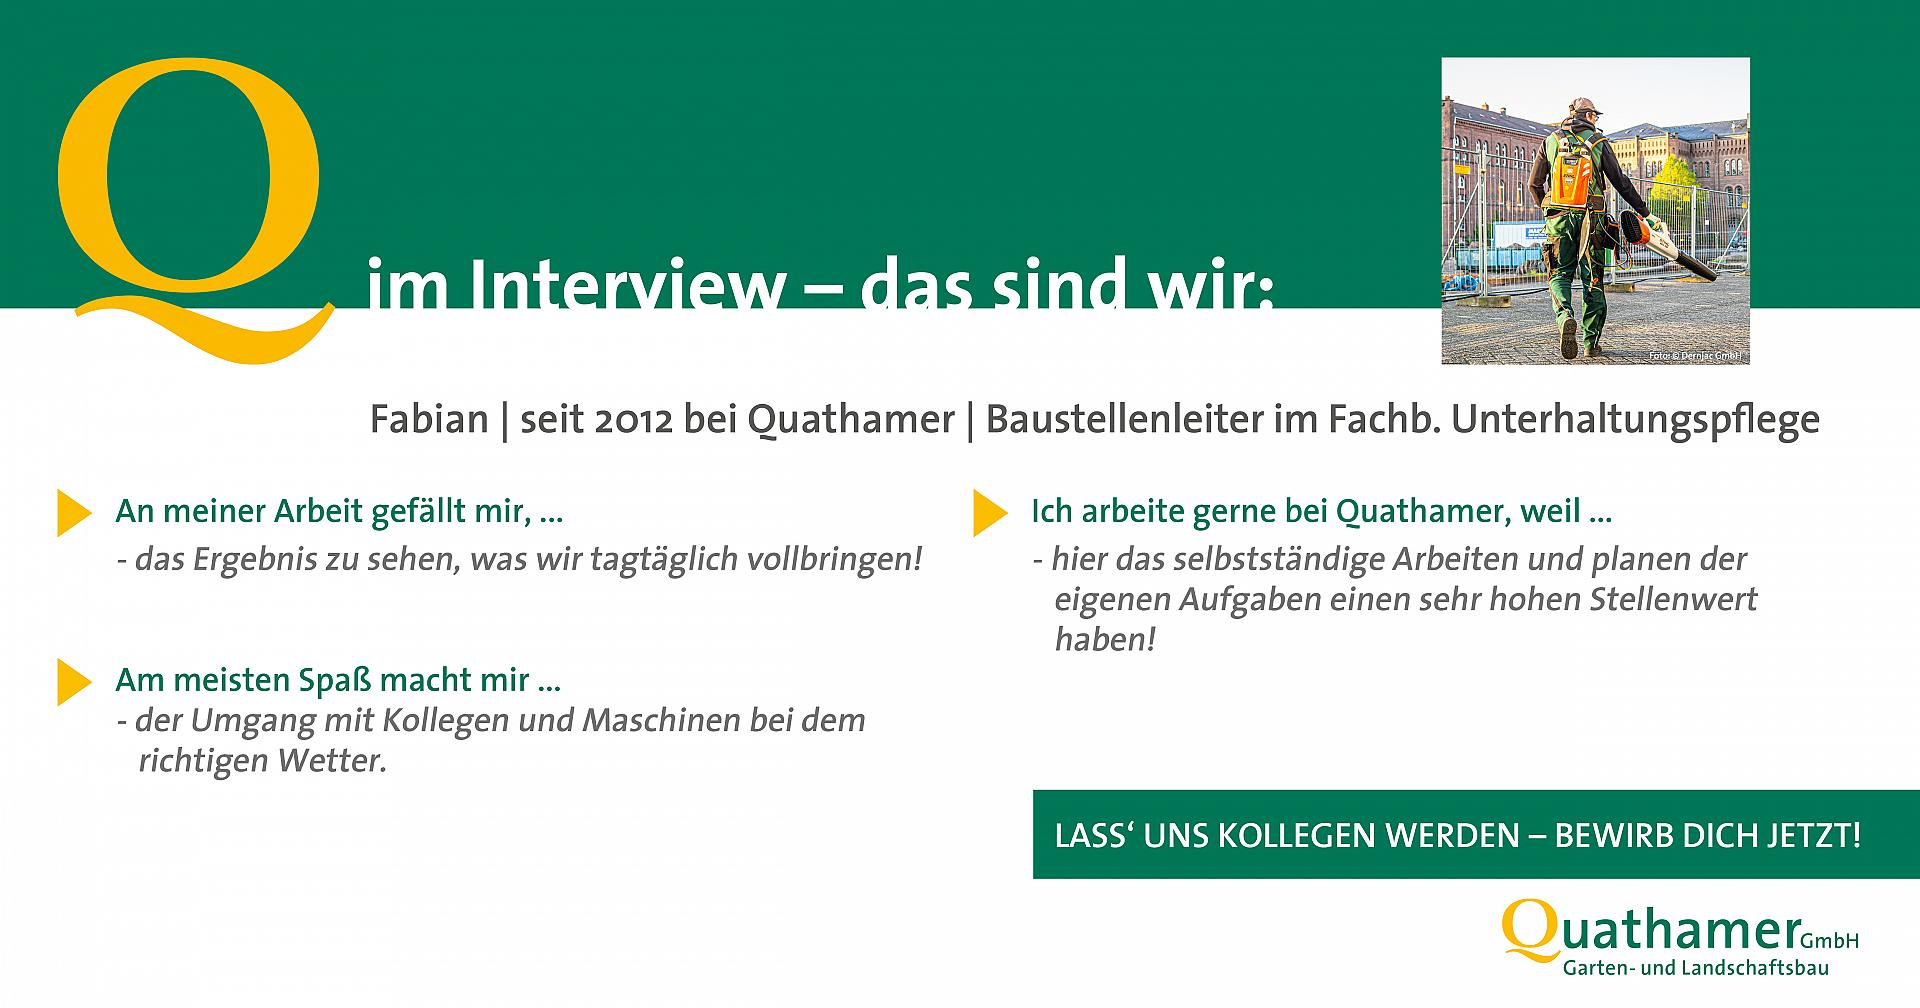 Interview mit Fabian